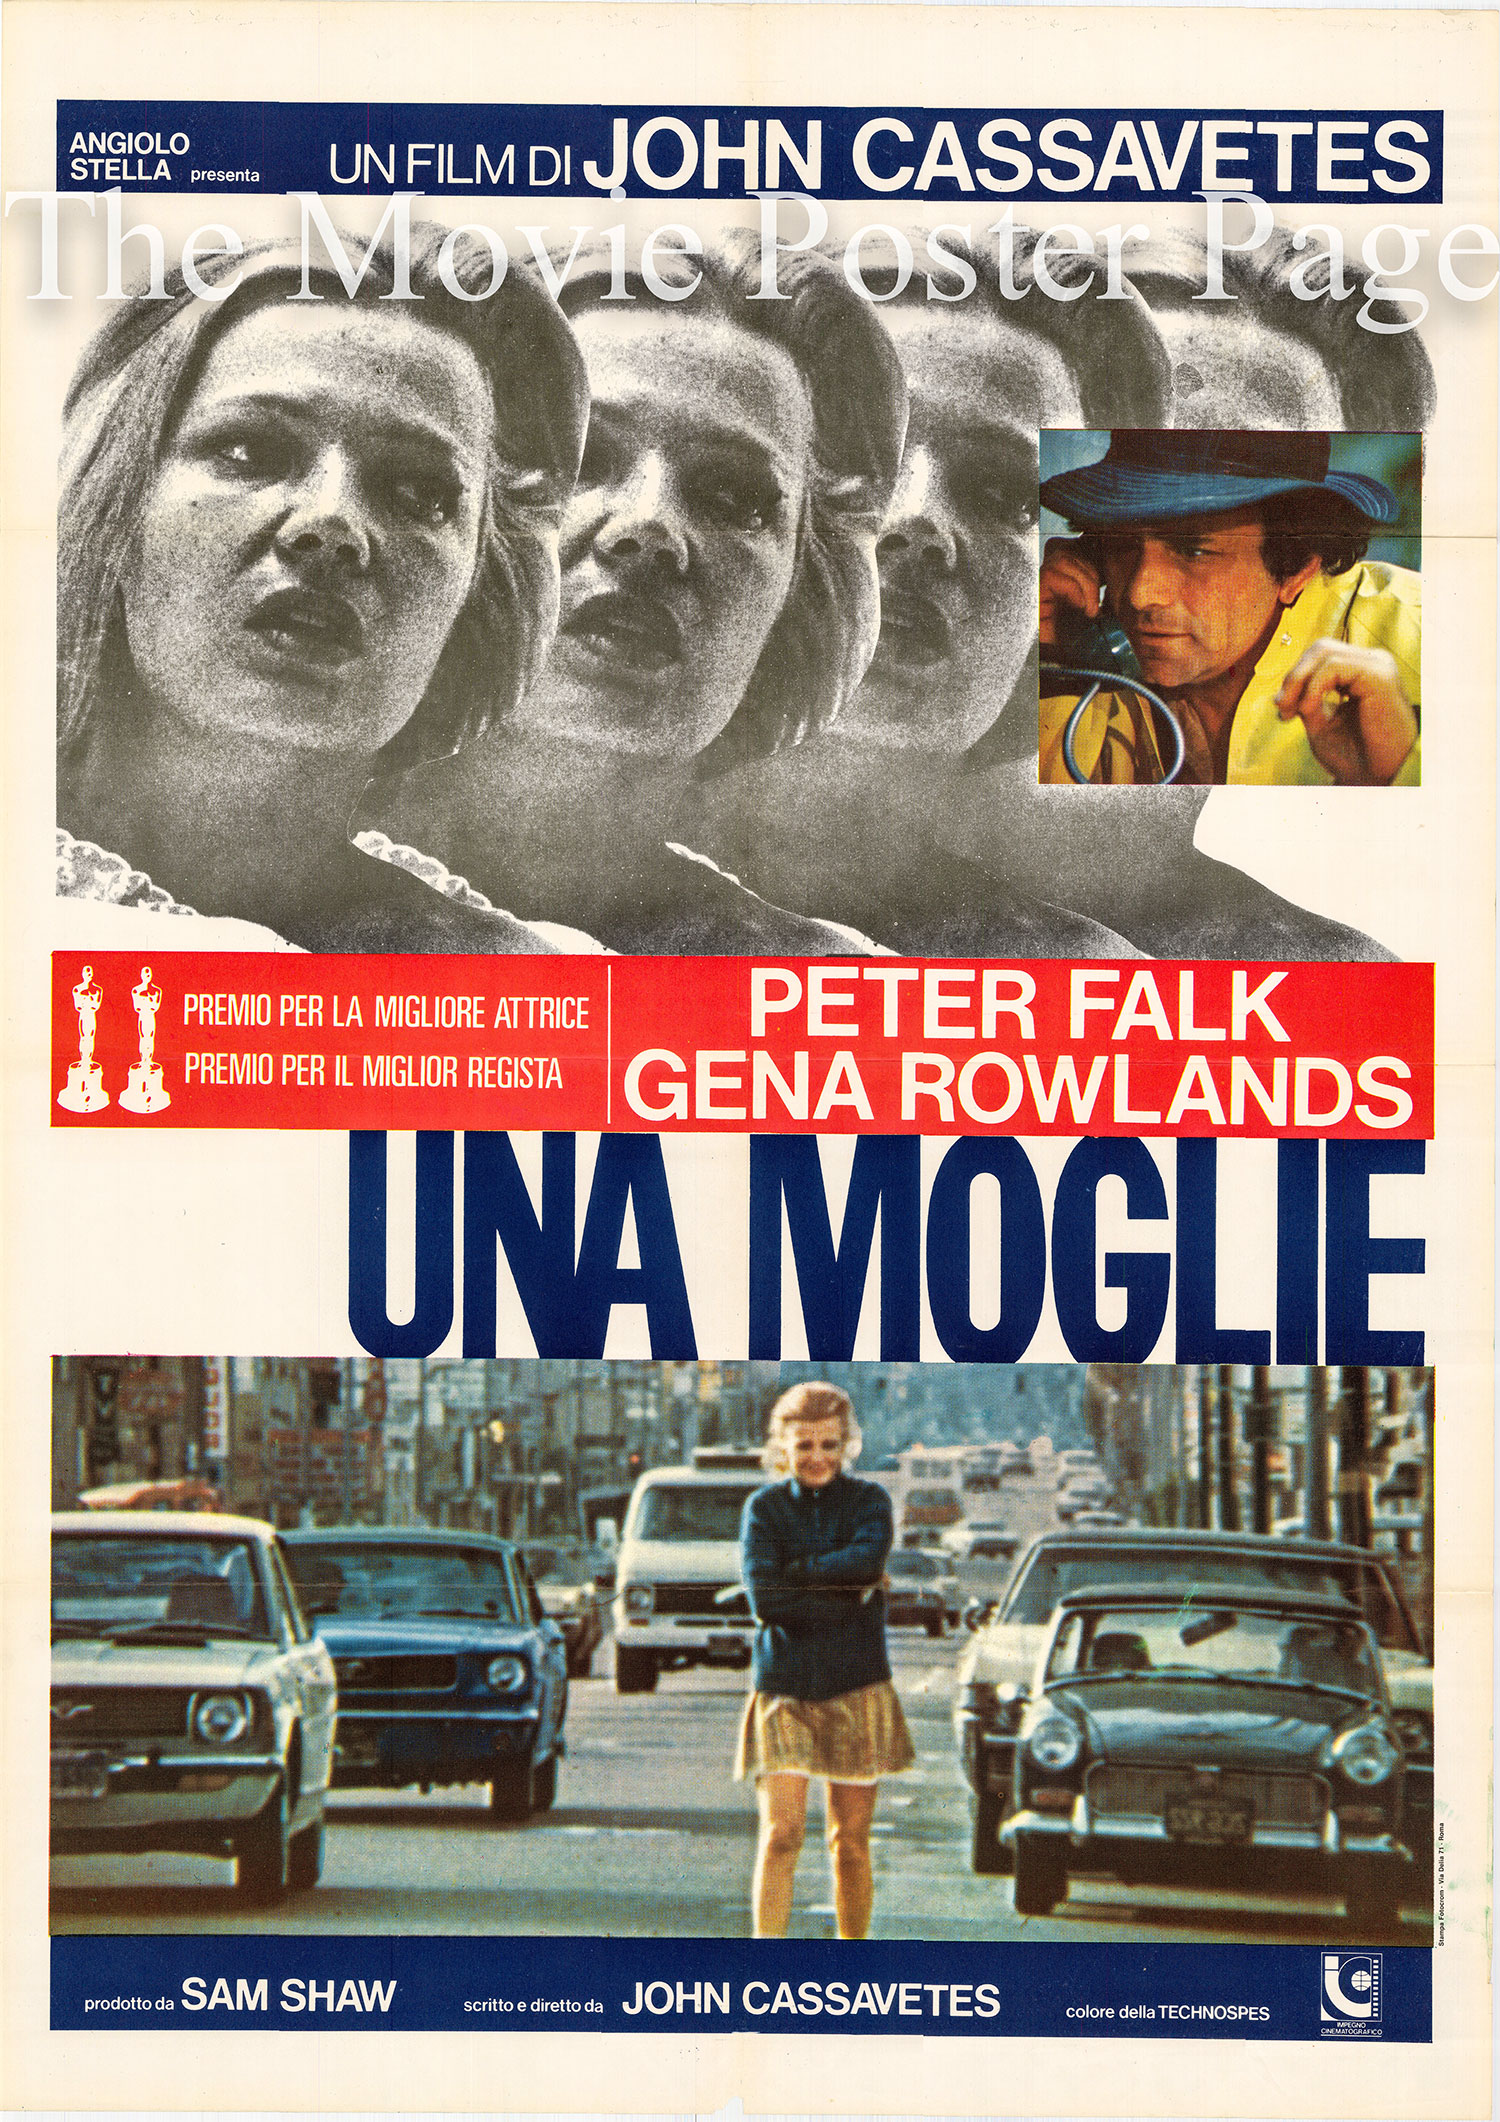 Pictured is an Italian two-sheet promotional poster for the 1974 John Cassavetes film <i>Woman under the Influence</i> starring Gina Rowlands.